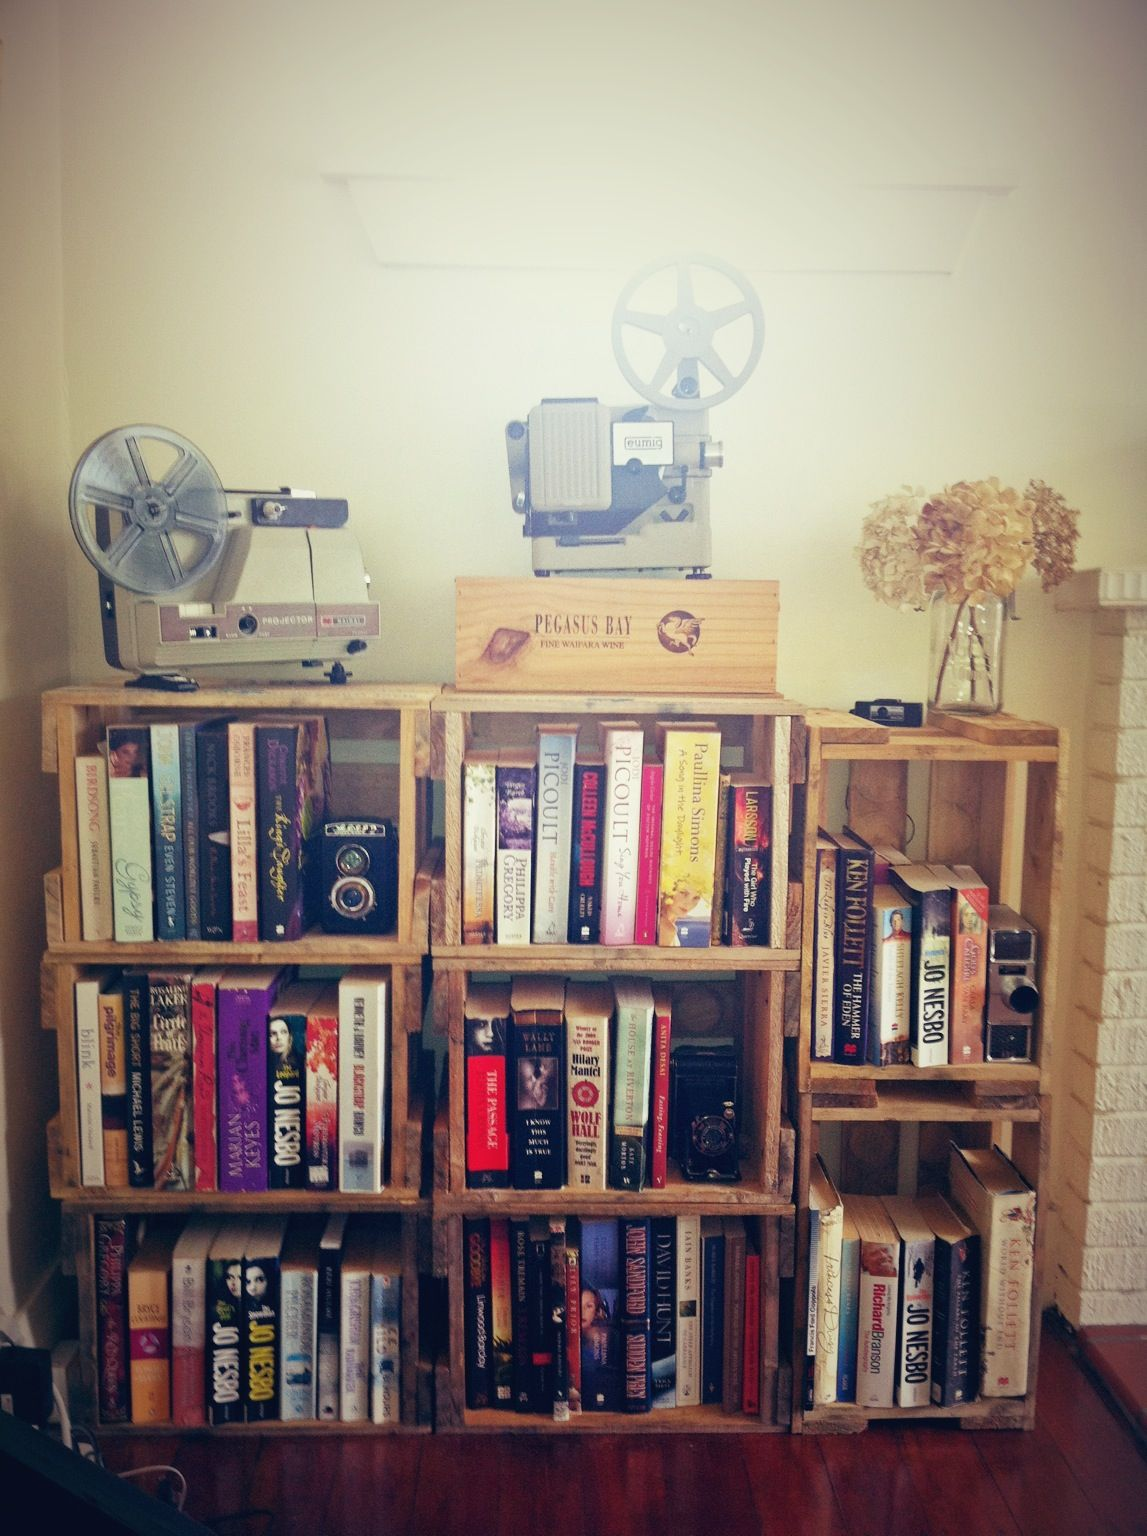 Crate bookshelf with vintage cameras